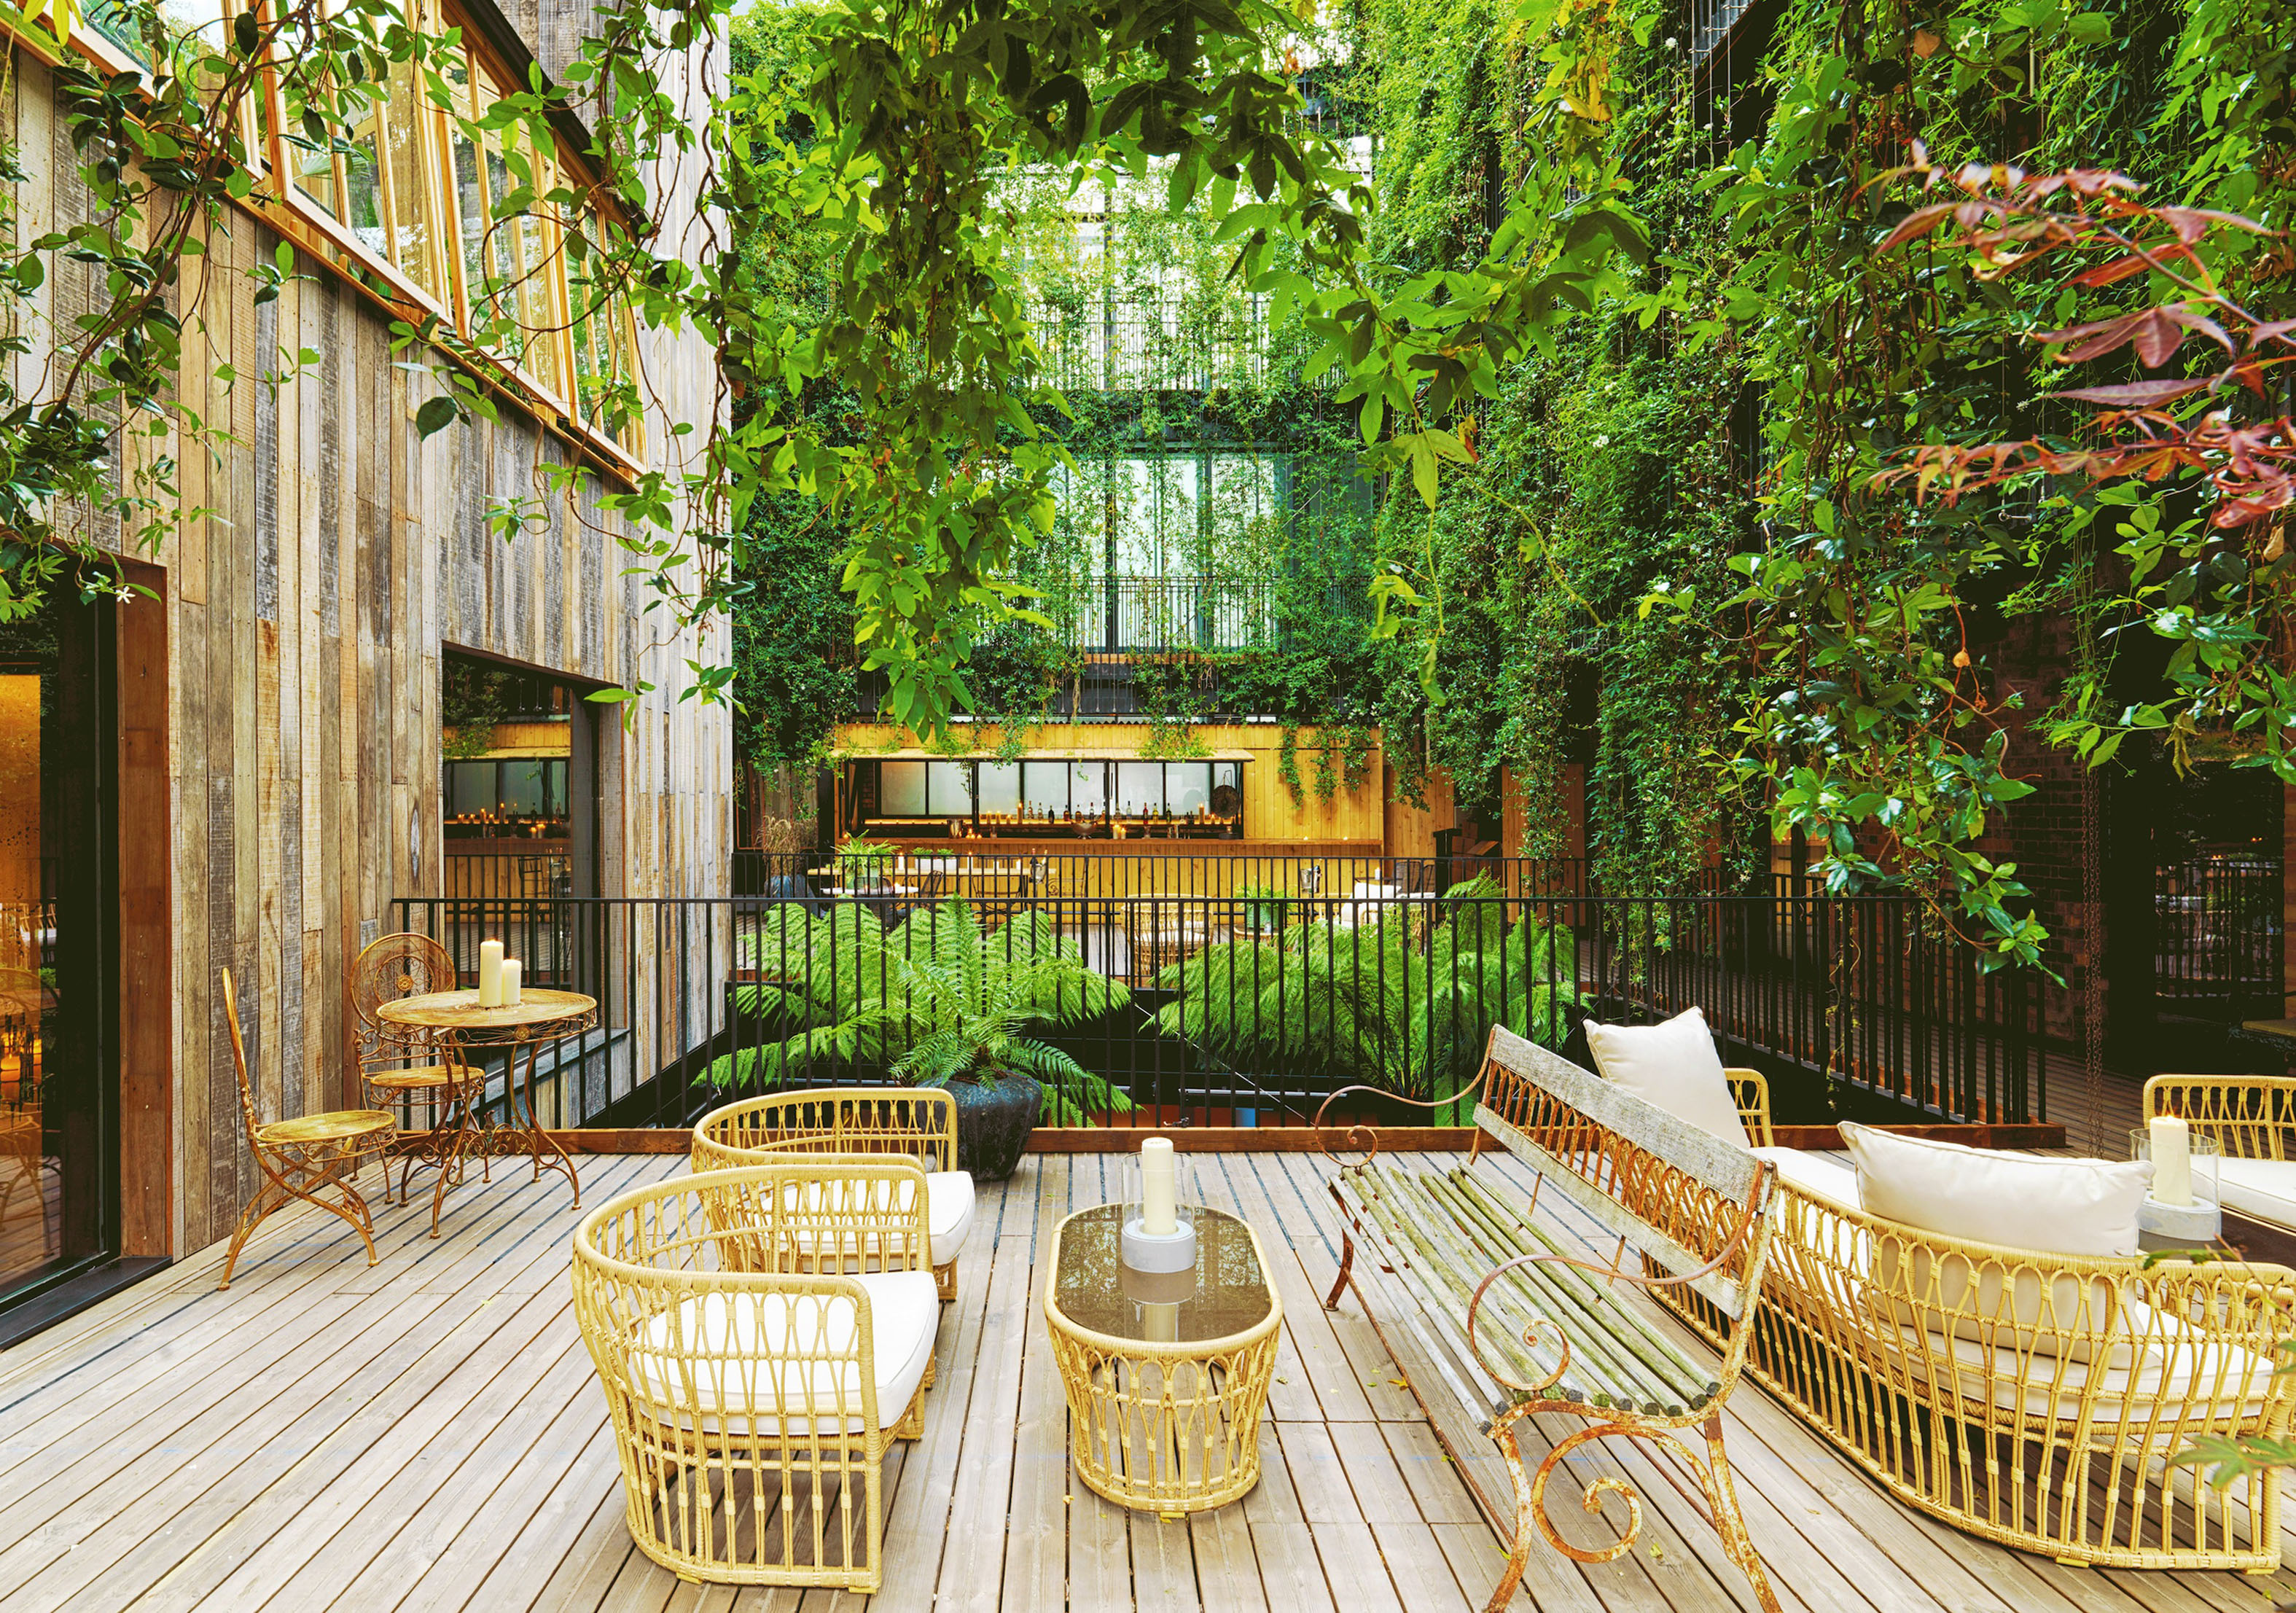 TOPHOTELDESIGN special: Hotels with stunning urban oasis spaces